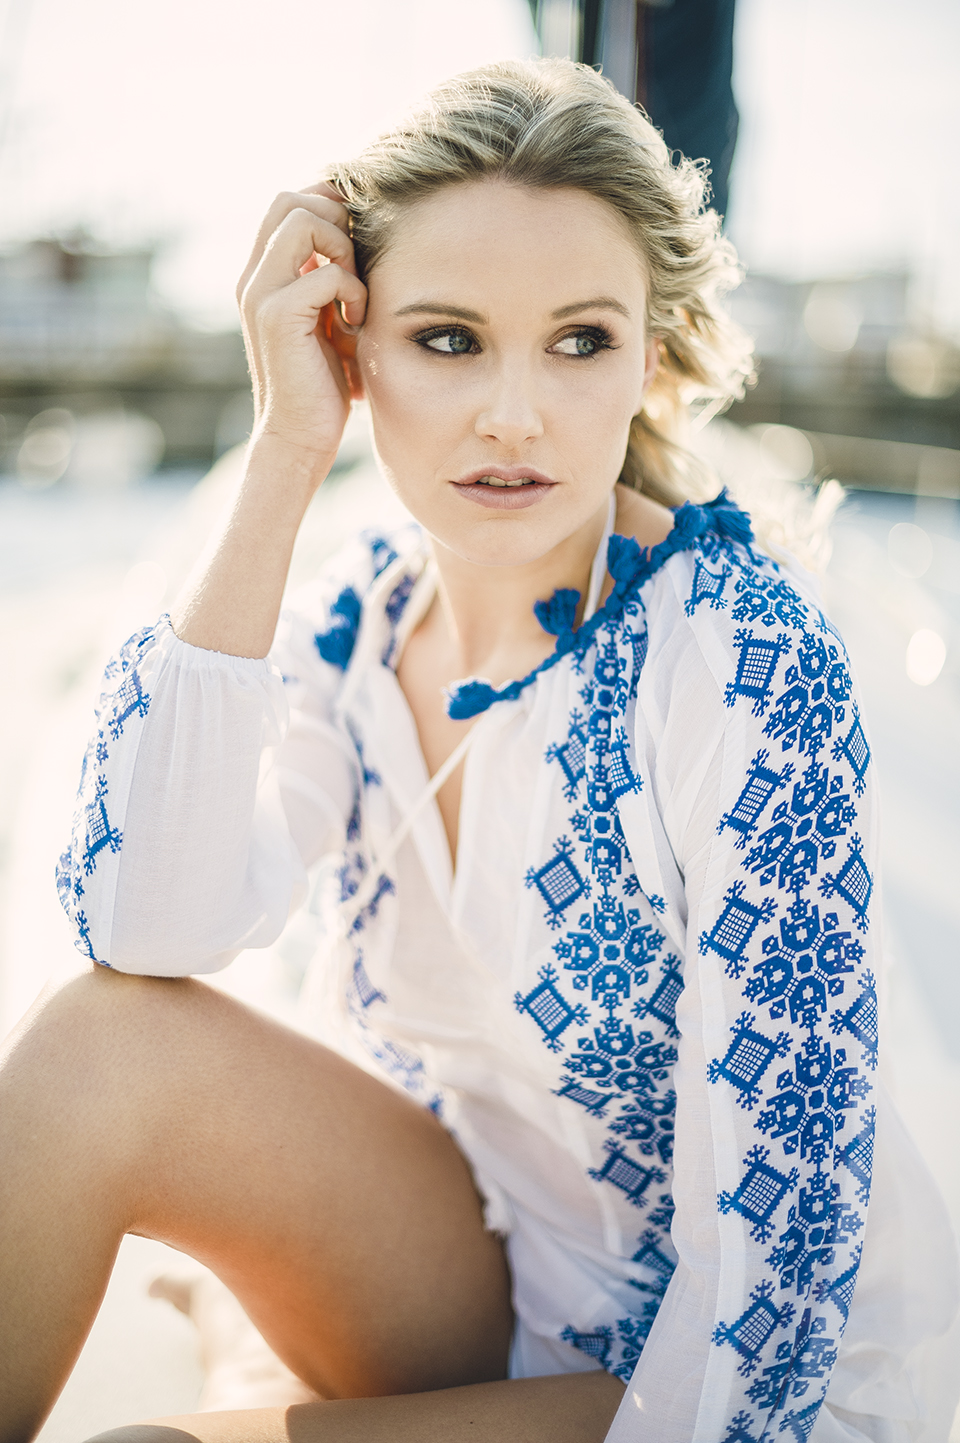 RyanParker_CapeTown_Photographer_Editorial_Fashion_Yacht_Nautical_RyanParker_CapeTown_Photographer_Editorial_Fashion_Yacht_Nautical_DSC_1392.jpg